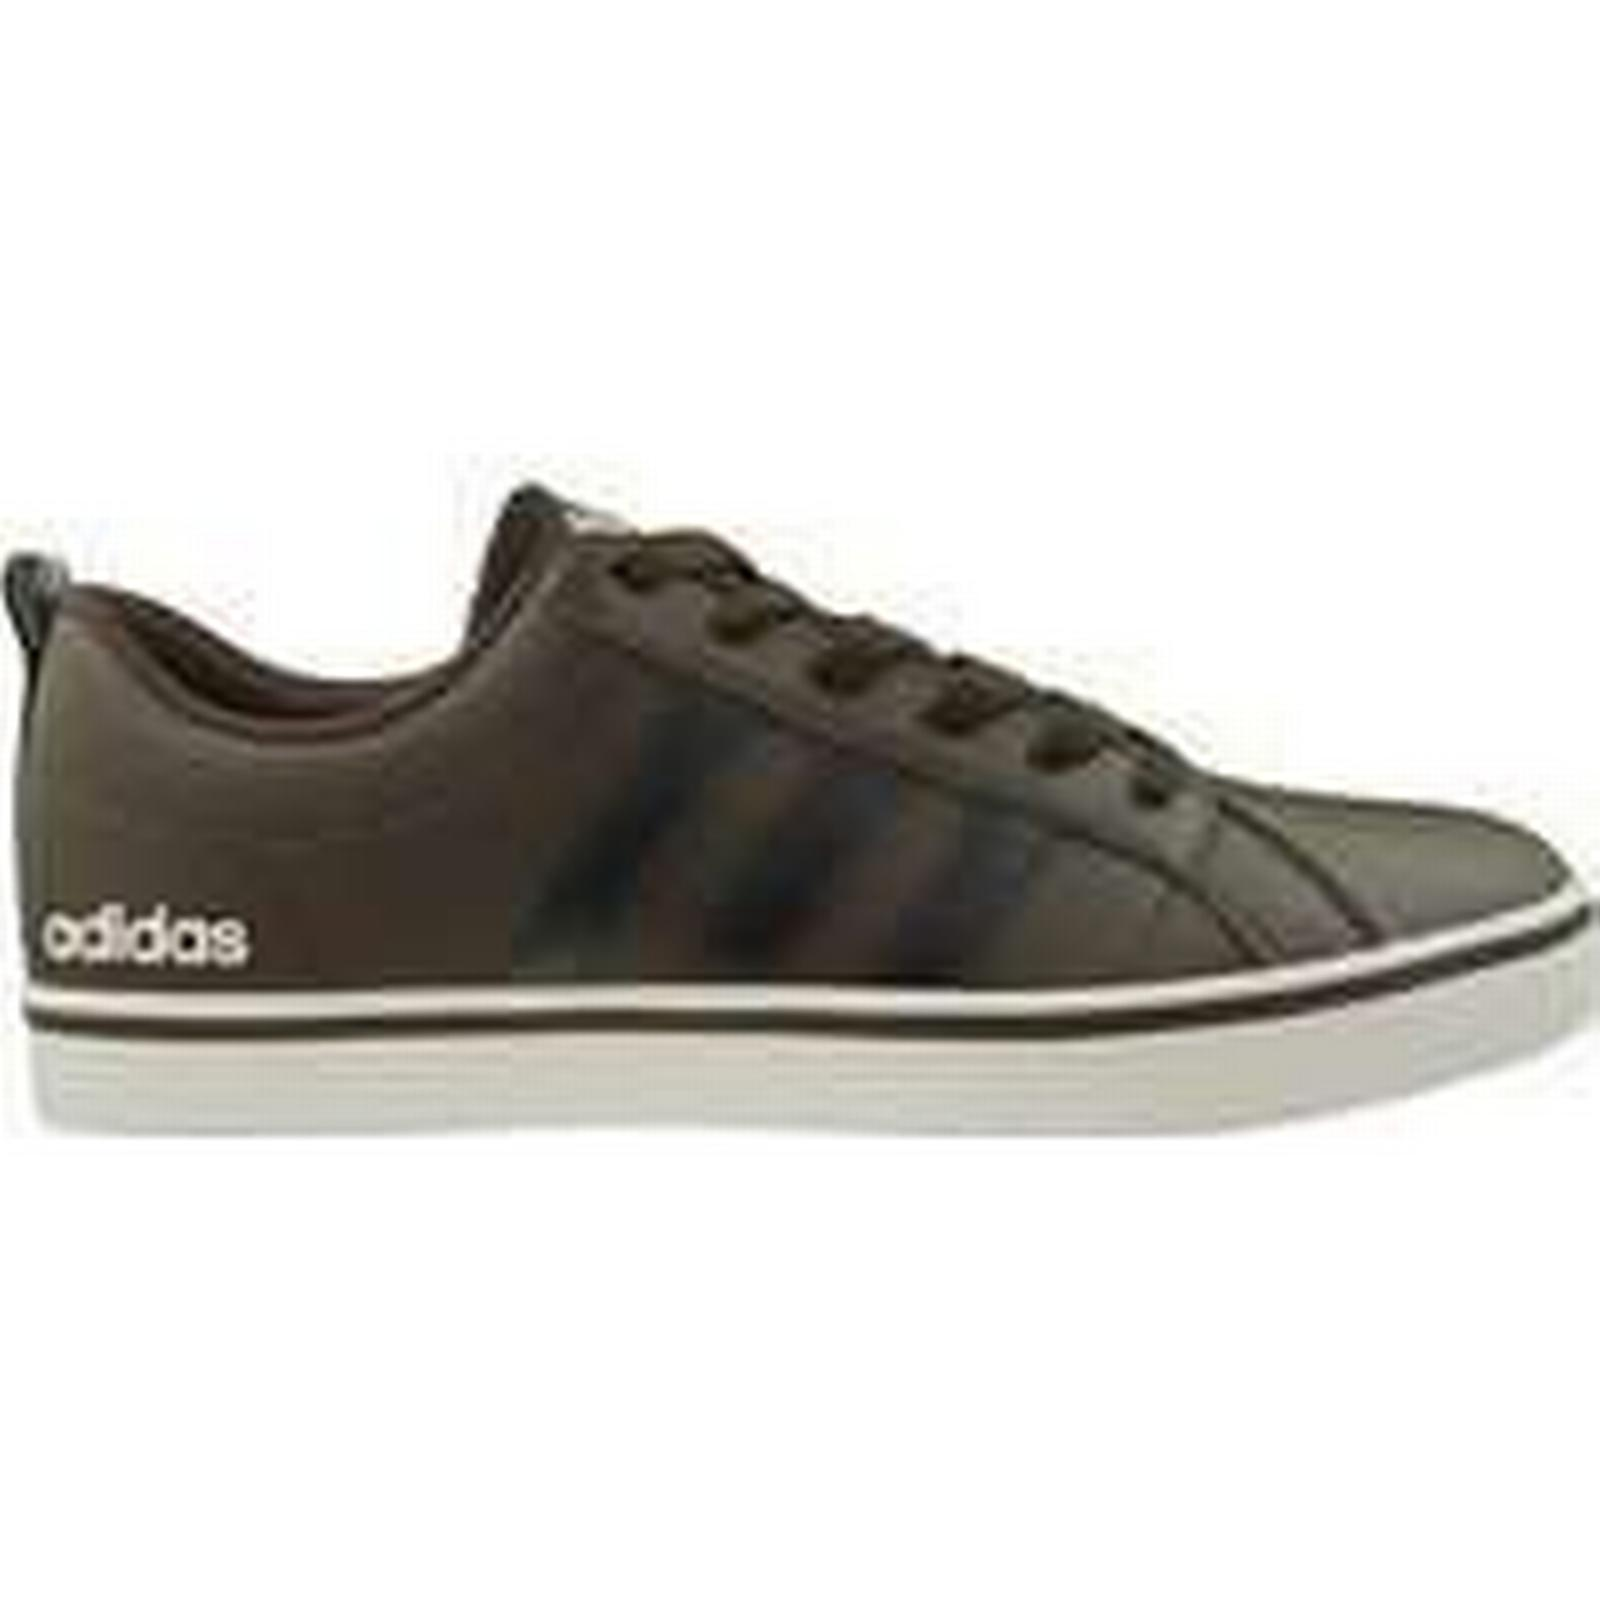 Heng Heng Heng Ai Yao Nouvel An, coeur vraiHommes t chaud adidas rythme vs hommes 7bf472